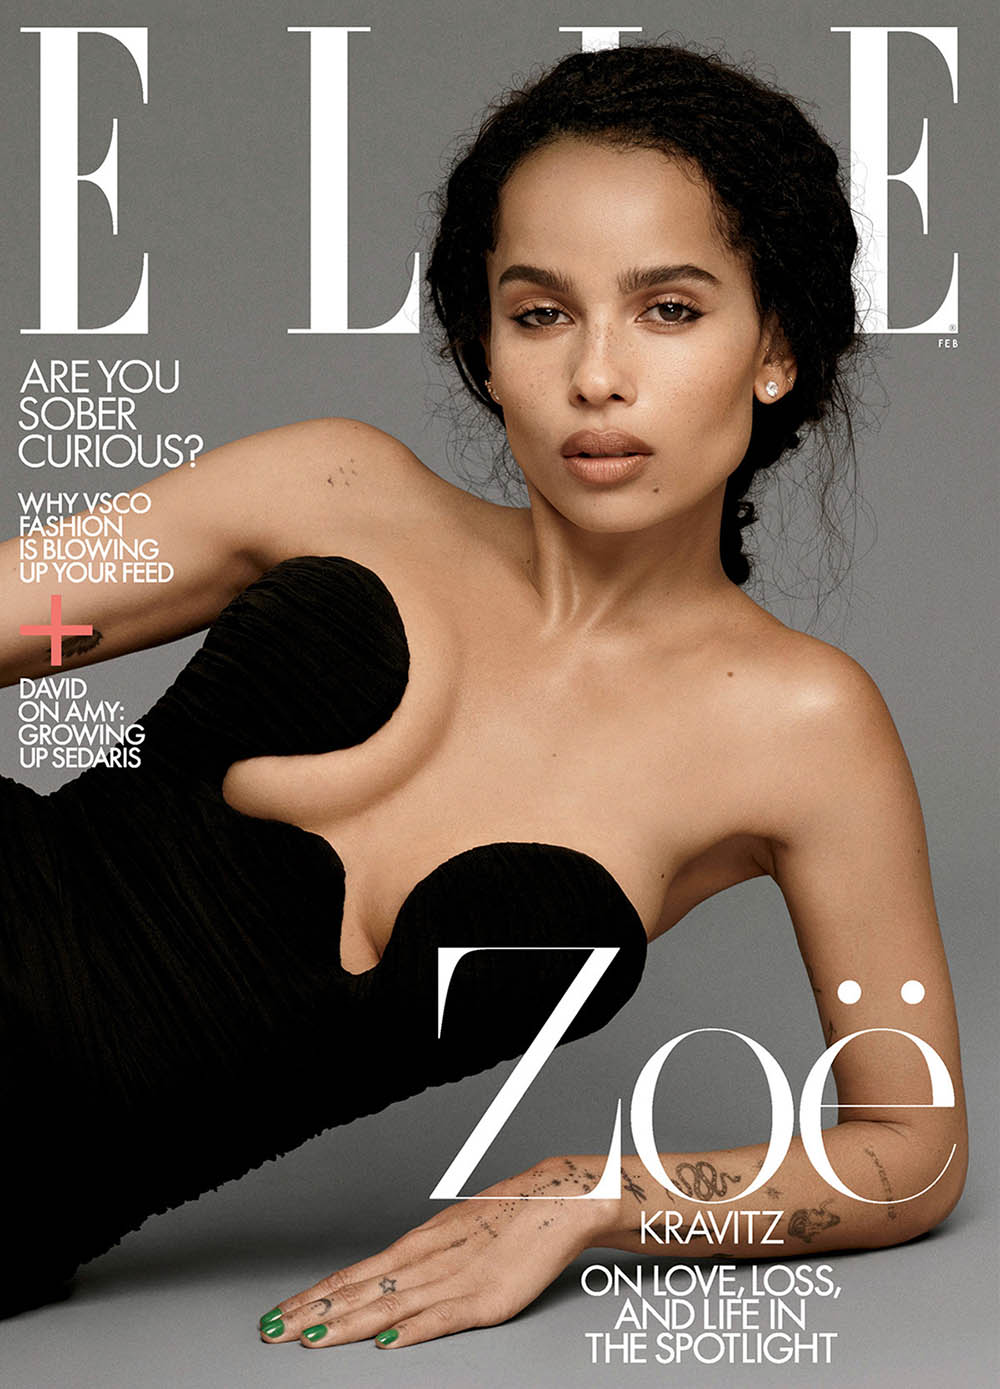 Zoë Kravitz covers Elle US February 2020 by Paola Kudacki